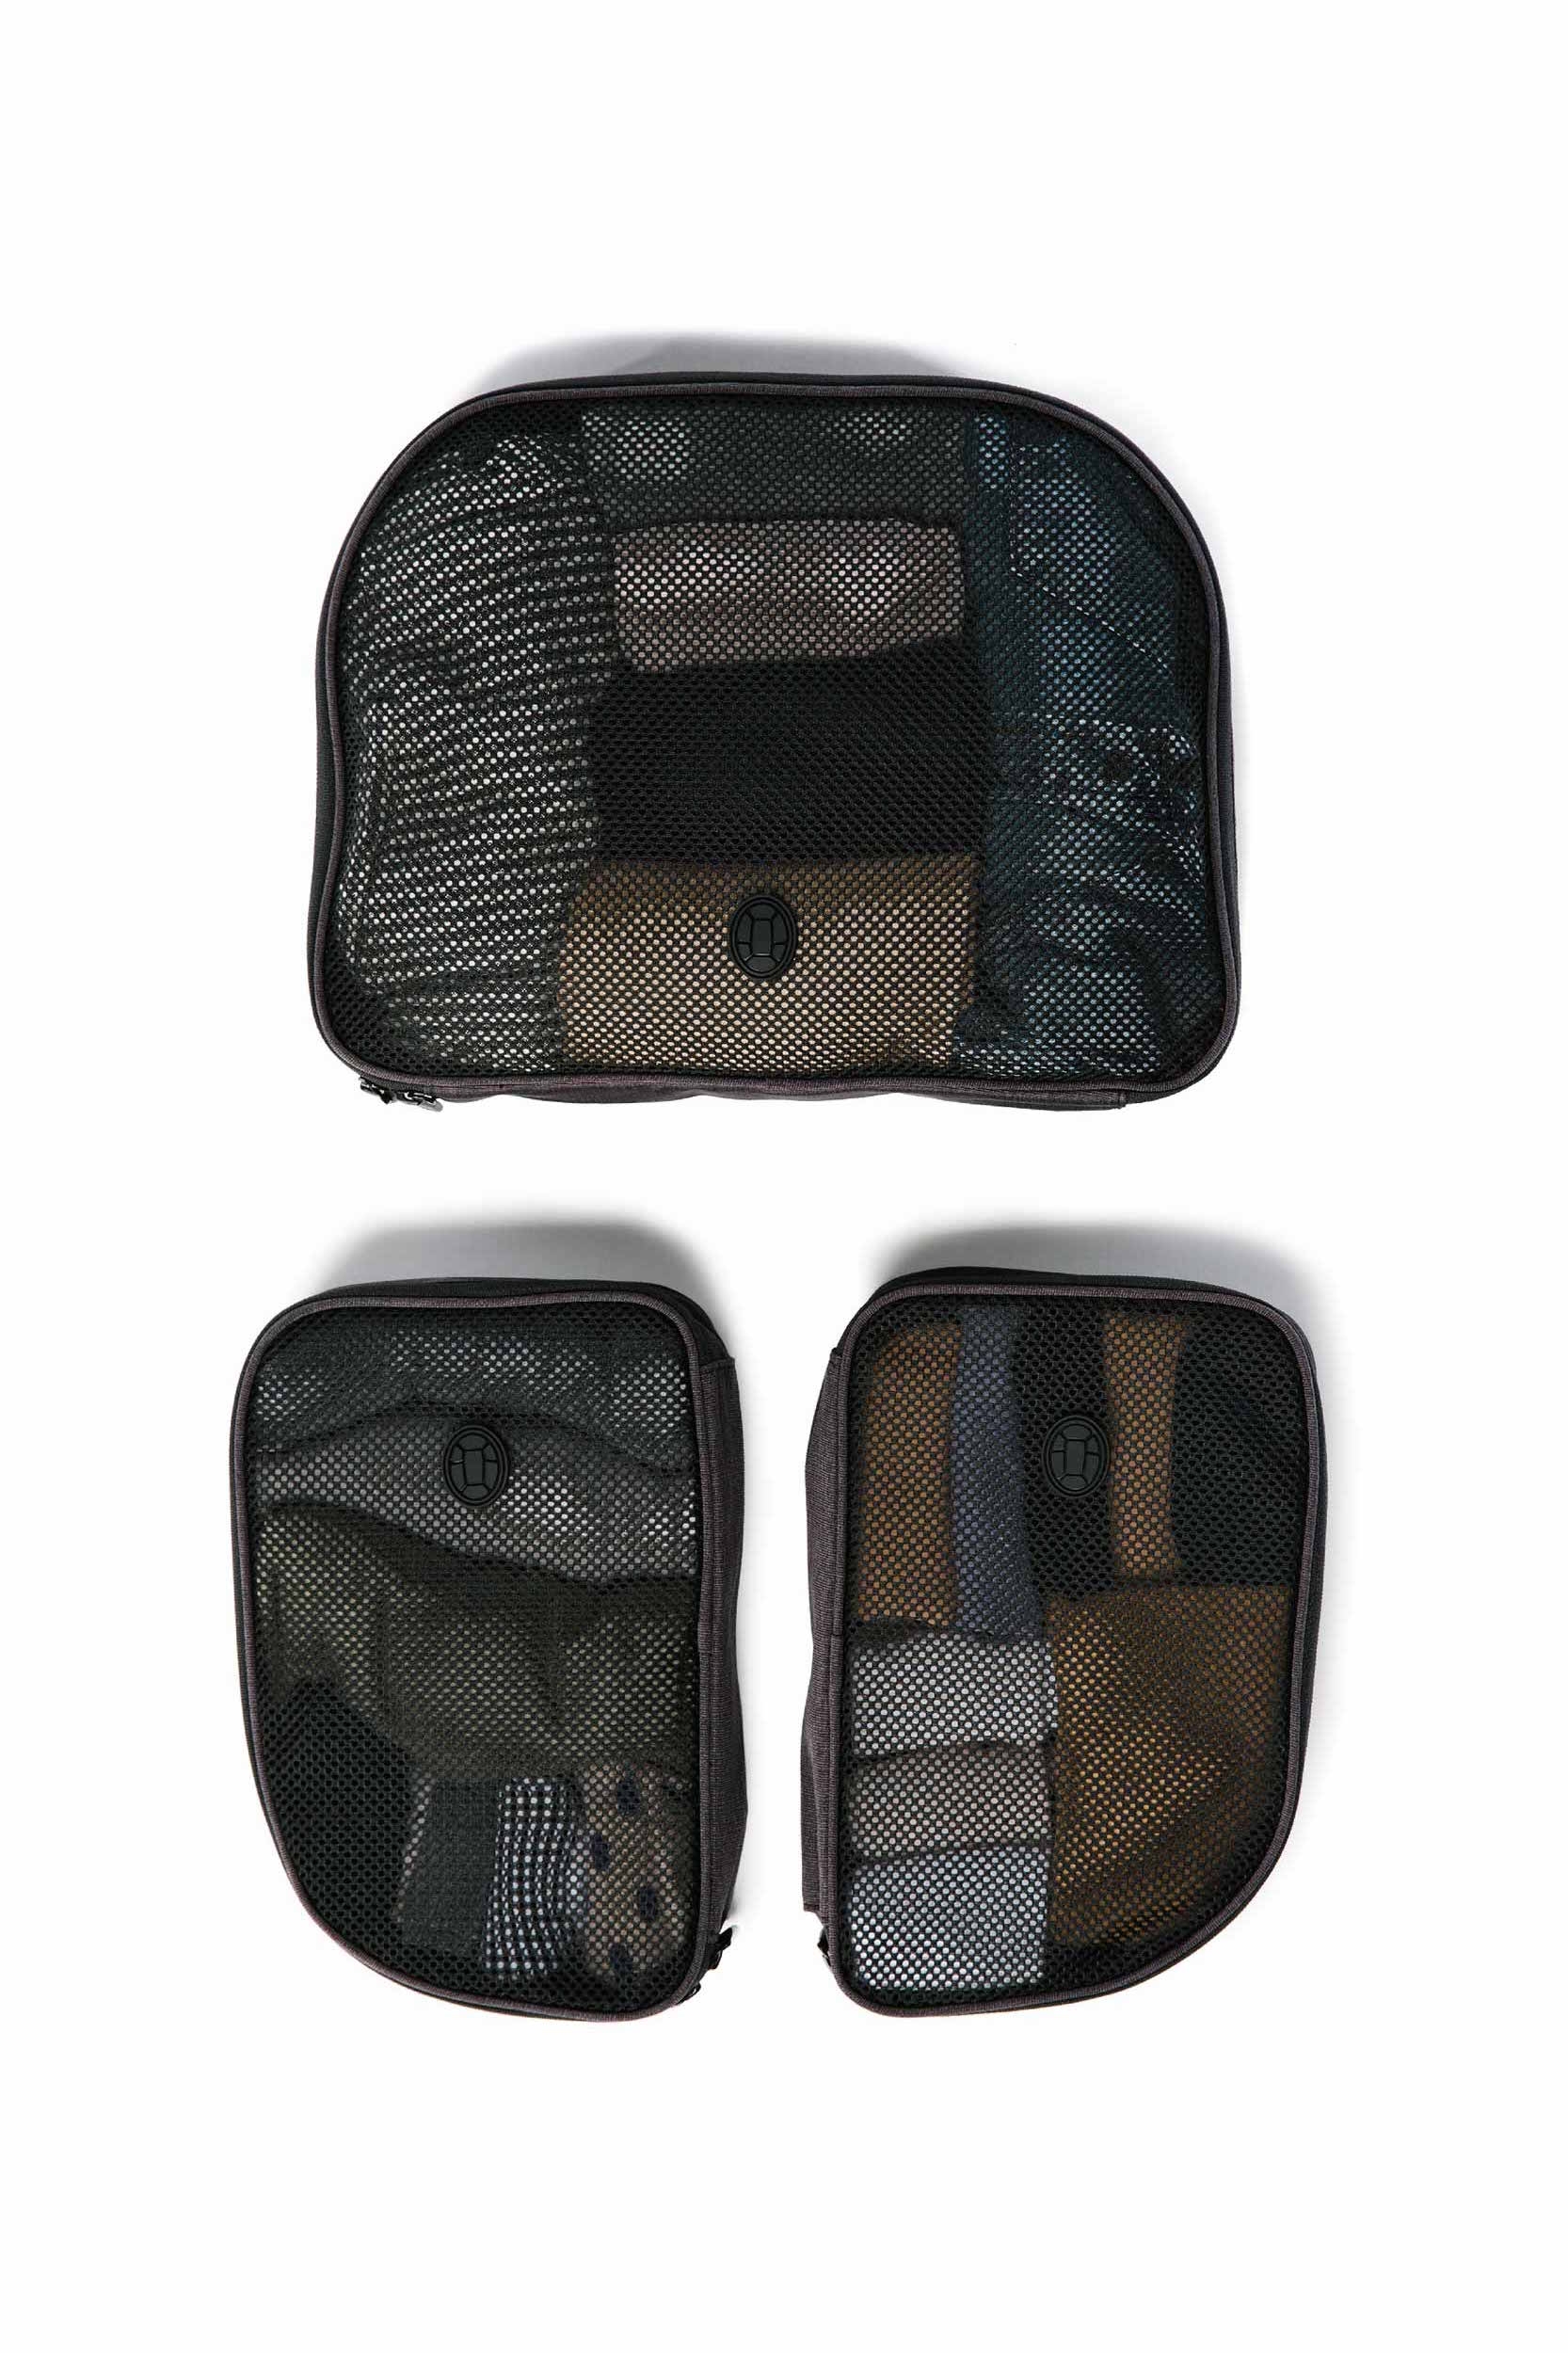 e796d7842 Travel Showdown: Packing Cubes vs Compression Bags - Tortuga ...